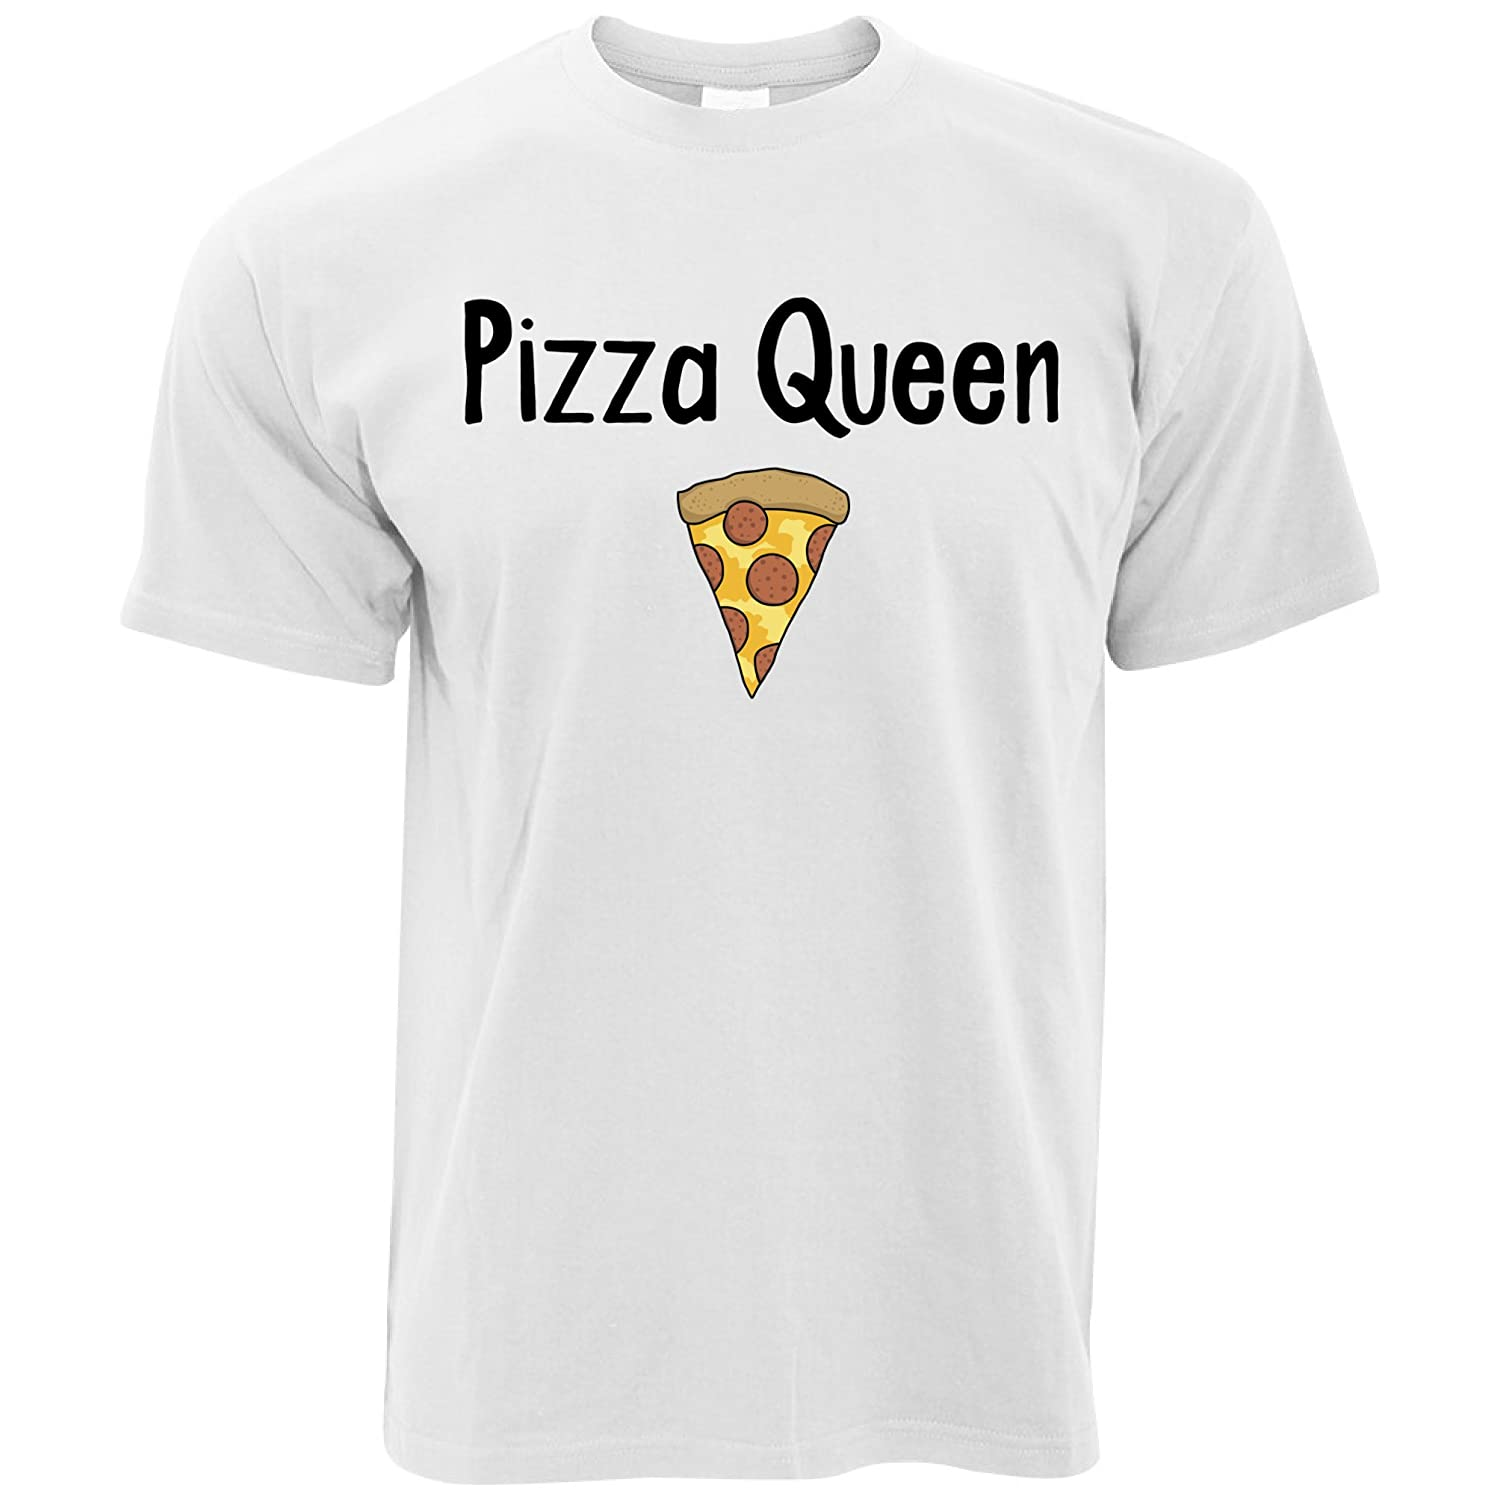 Tim And Ted Funny Food T Shirt Pizza Queen Slogan with Slice